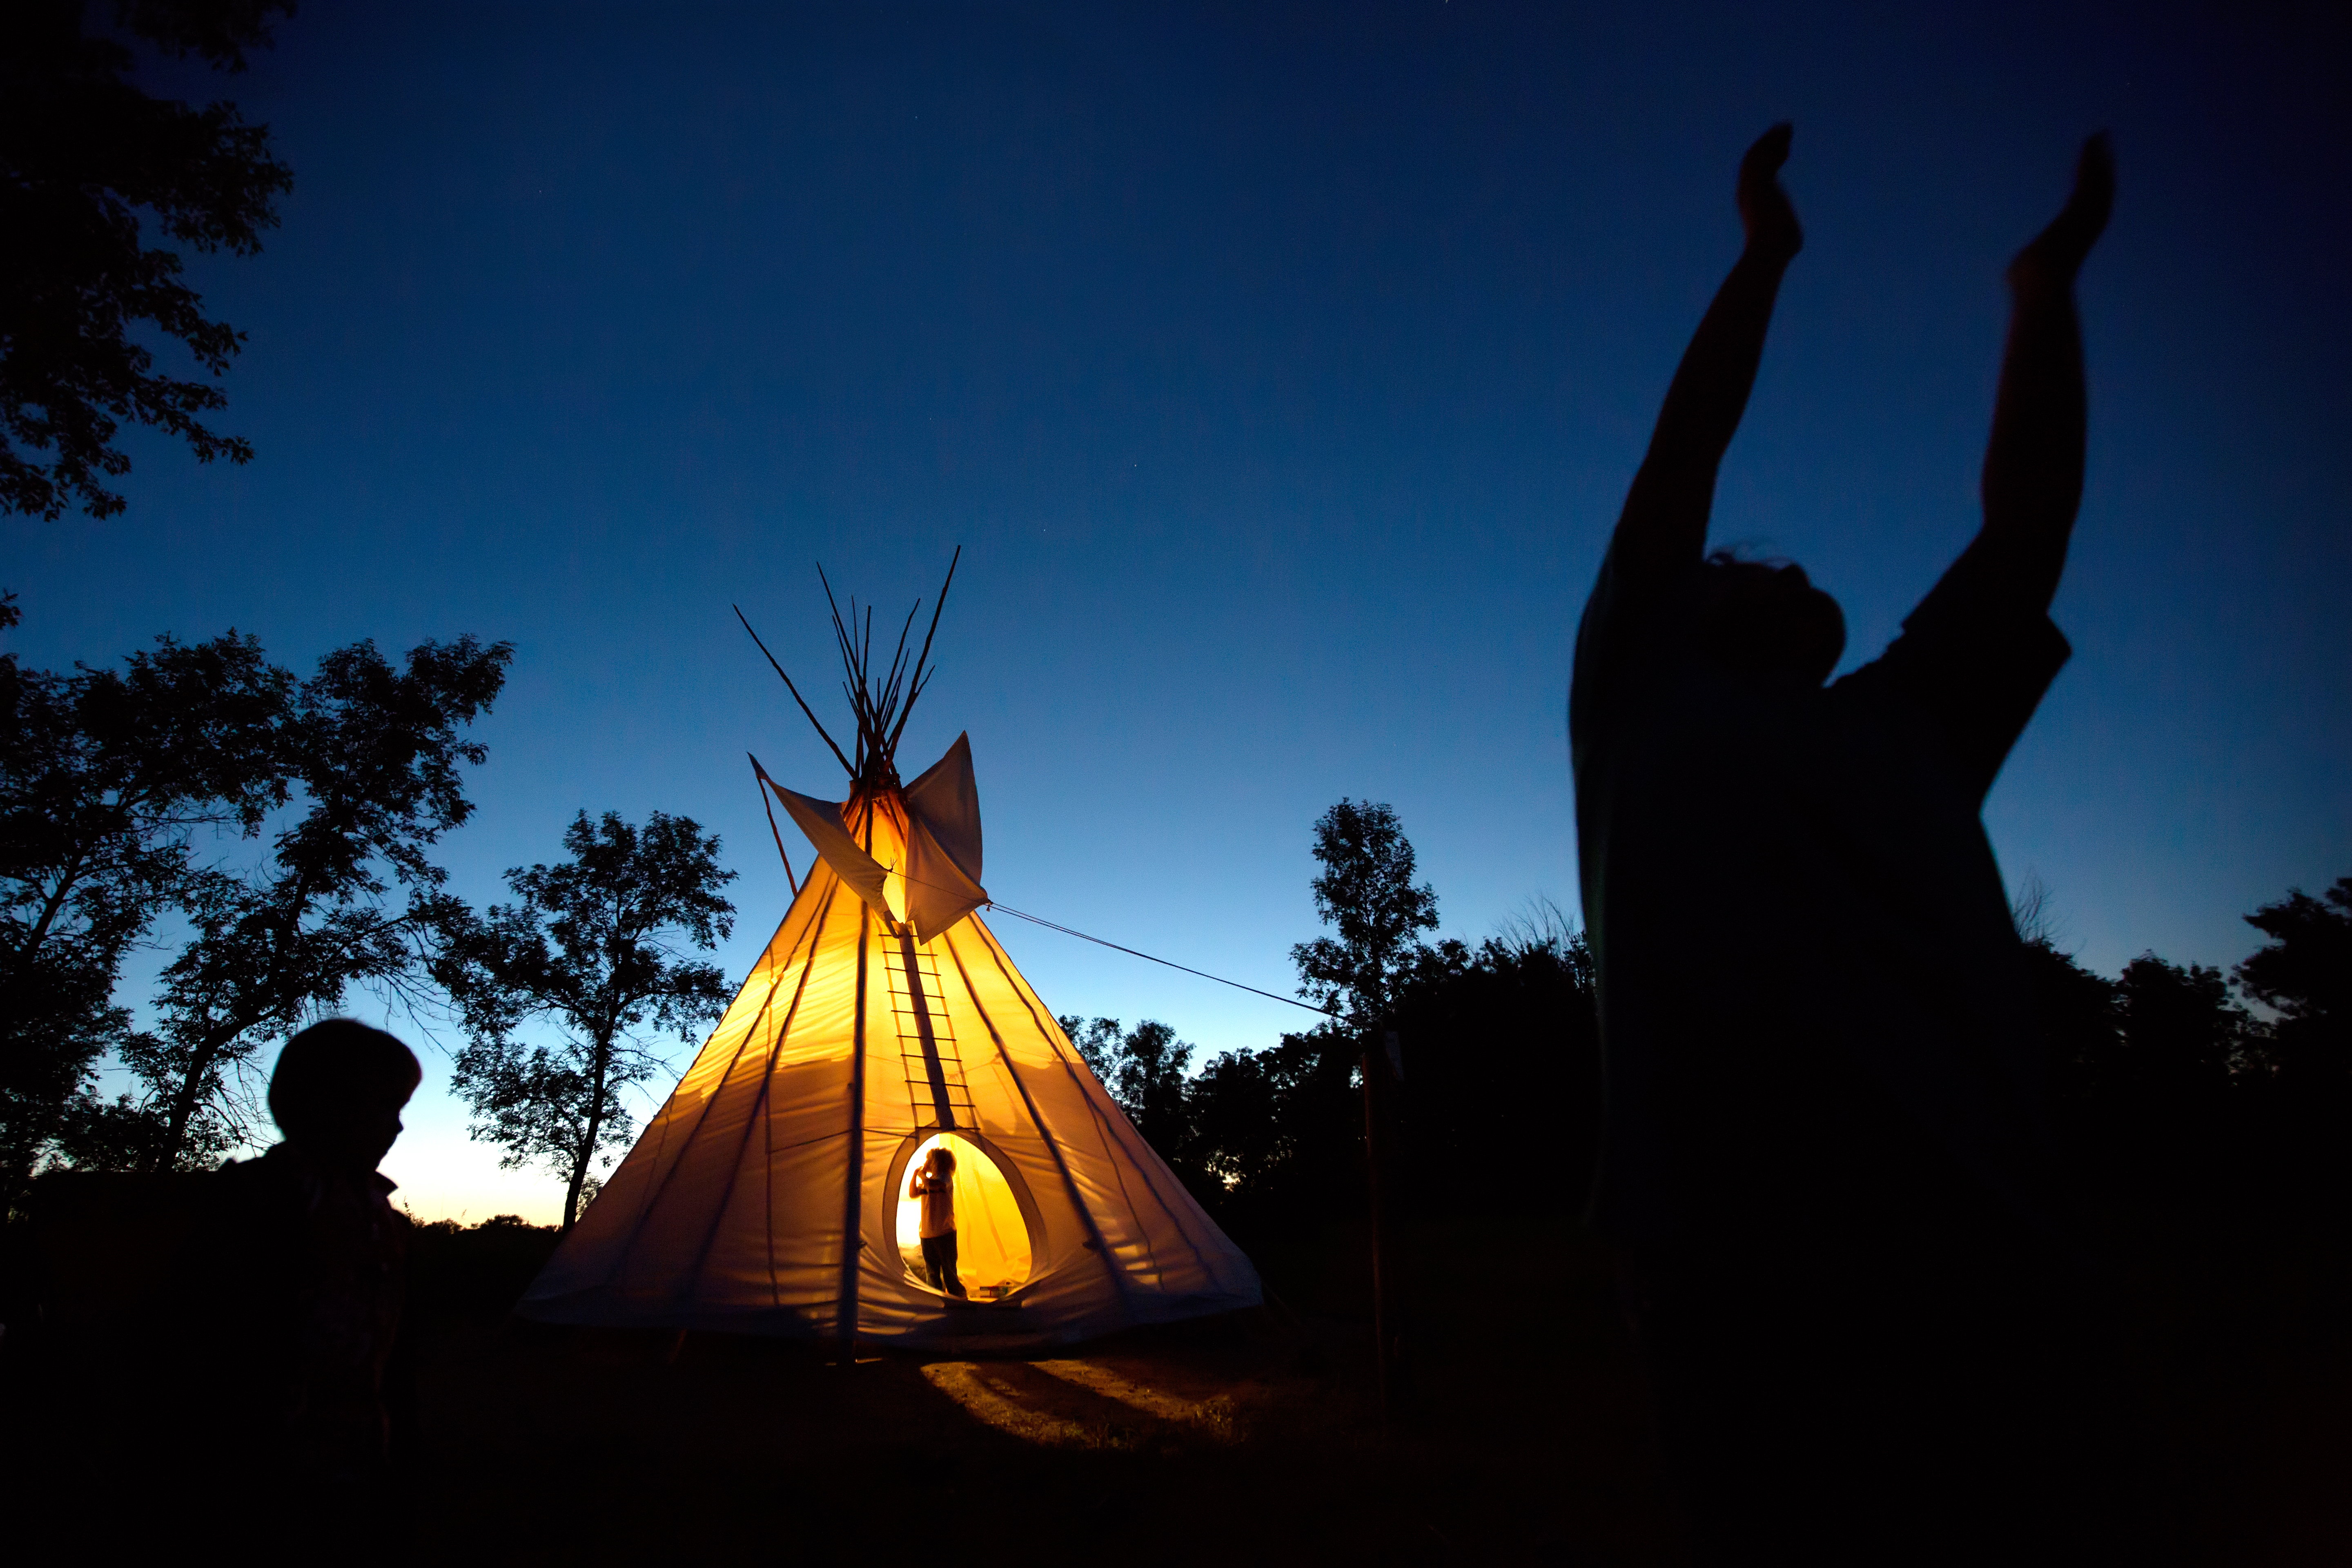 There are a growing number of ways to stay in state parks, no tent required. The tepees in Blue Mounds State Park near Luvurne have been a popular option for years.